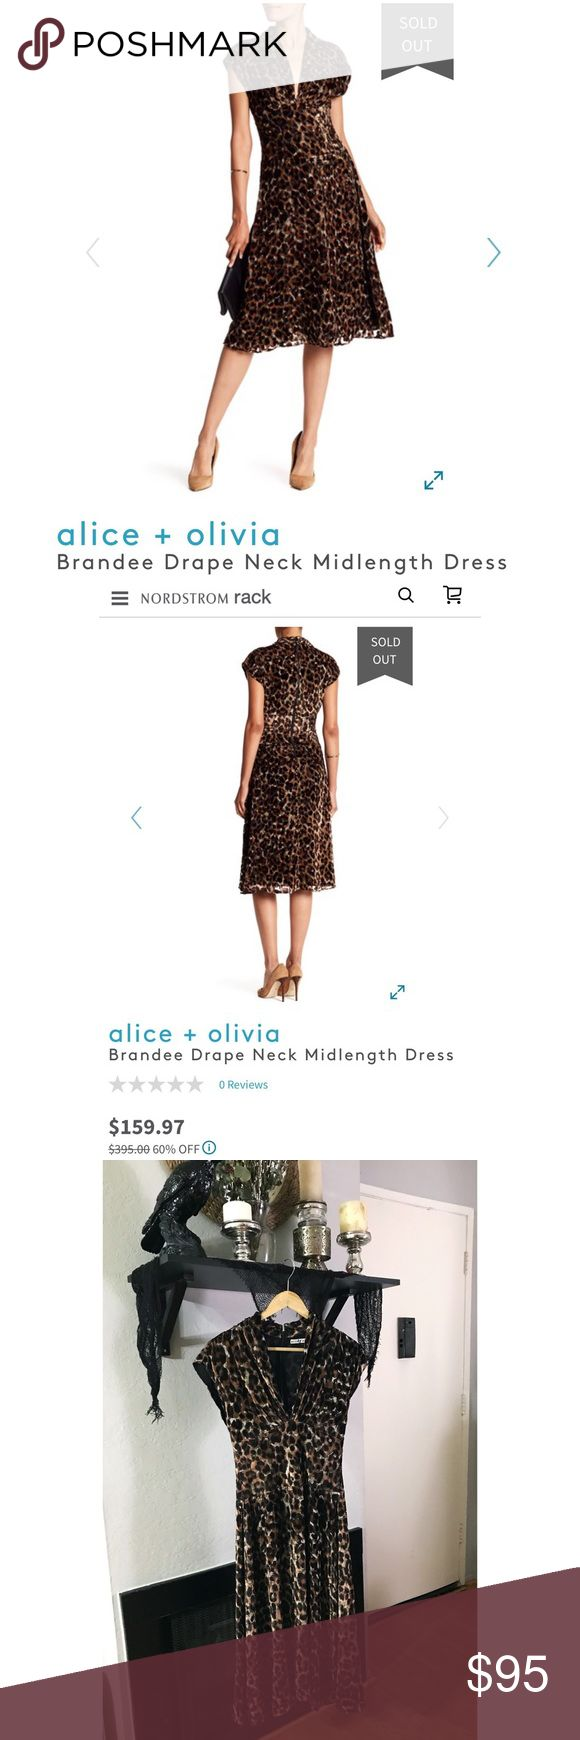 """Alice + Olivia Vintage Mid Length Dress Absolutely stunning vintage style, drape neck, mid length dress by Alice + Olivia. Leopard pattern in luxurious burnout velvet. Very nicely made, pre-worn and in excellent condition.  Dress originally priced at $395, before being marked down to $160 at Nordstrom Rack and sold out.   Size 0 - 32"""" Bust with deep V Neck/26"""" Waist/A-Line Skirt Flares to about 40"""" at hi  Dress Length is Approx 43.5""""  Shell: 75% viscose, 25% silk Lining: 94% polyester, 6%…"""